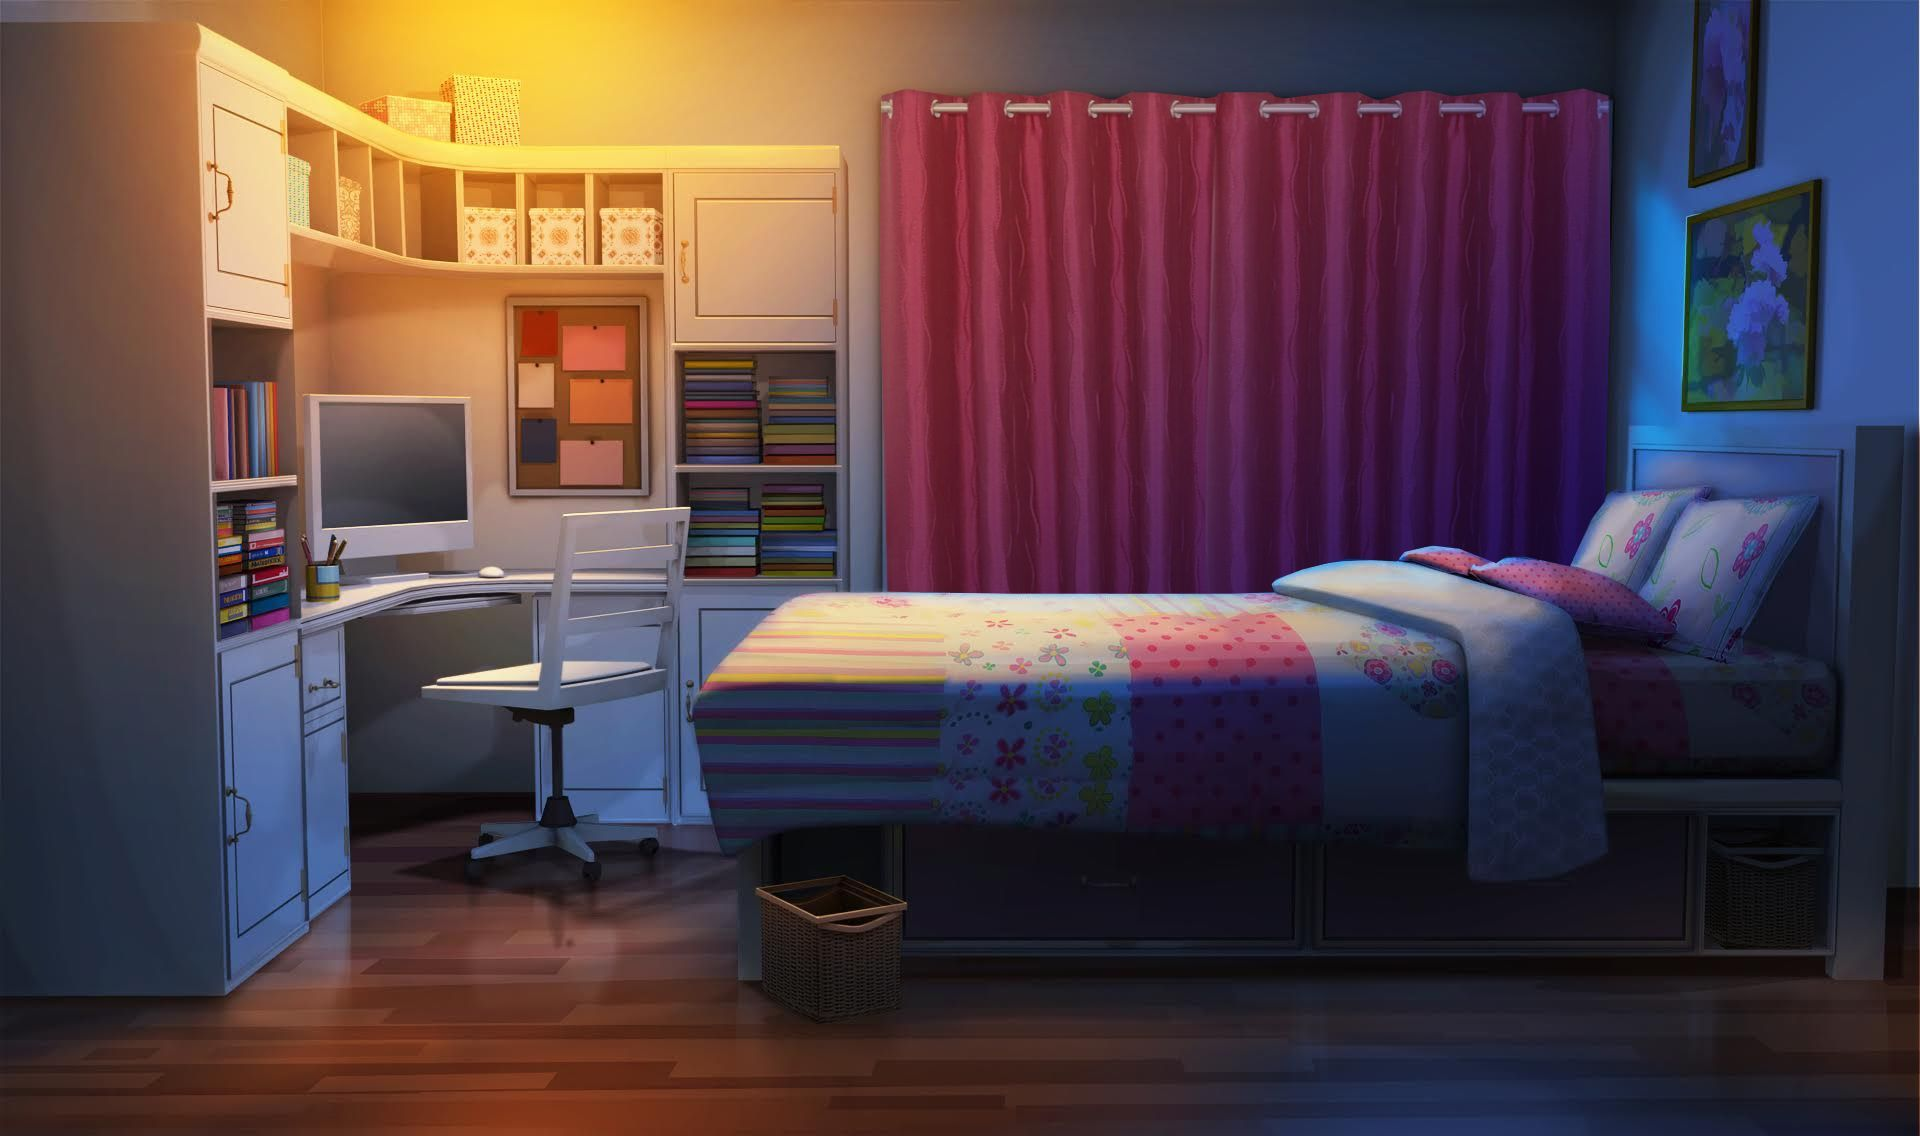 Dark Anime Bedroom Background In 2020 Living Room Background